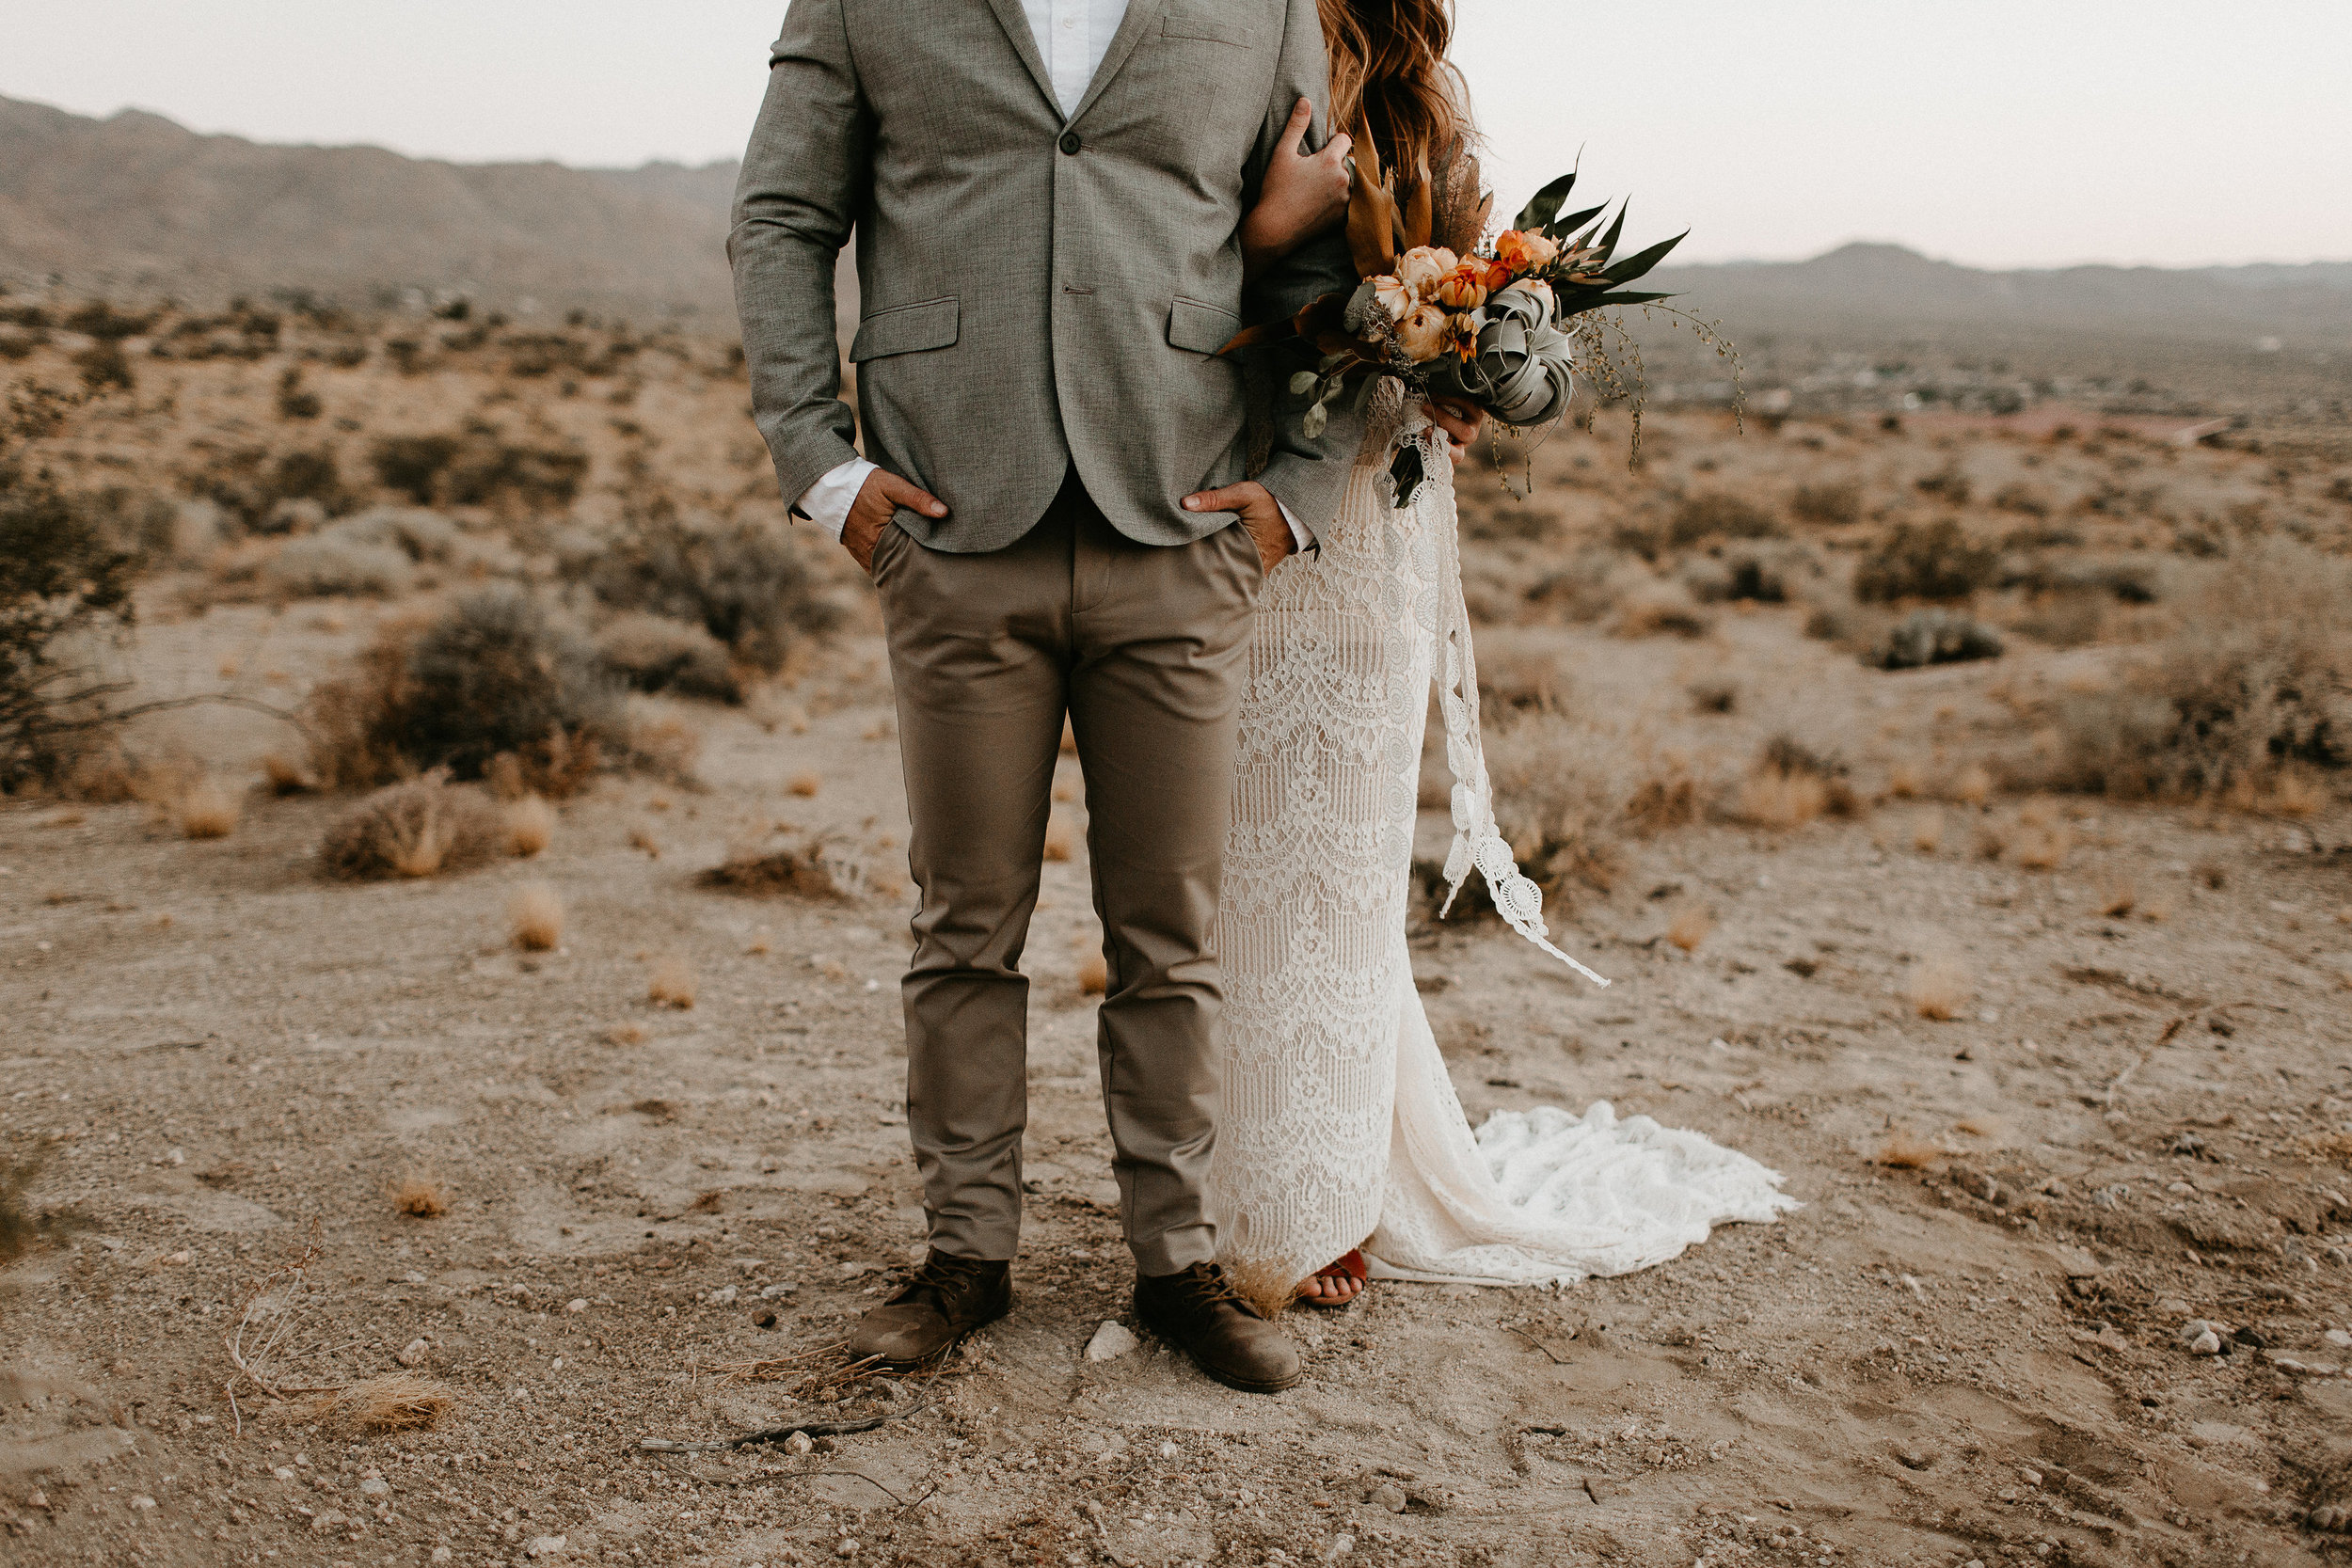 airplant bouquet for desert wedding featured on junebug weddings #lrqcfloral #jtree